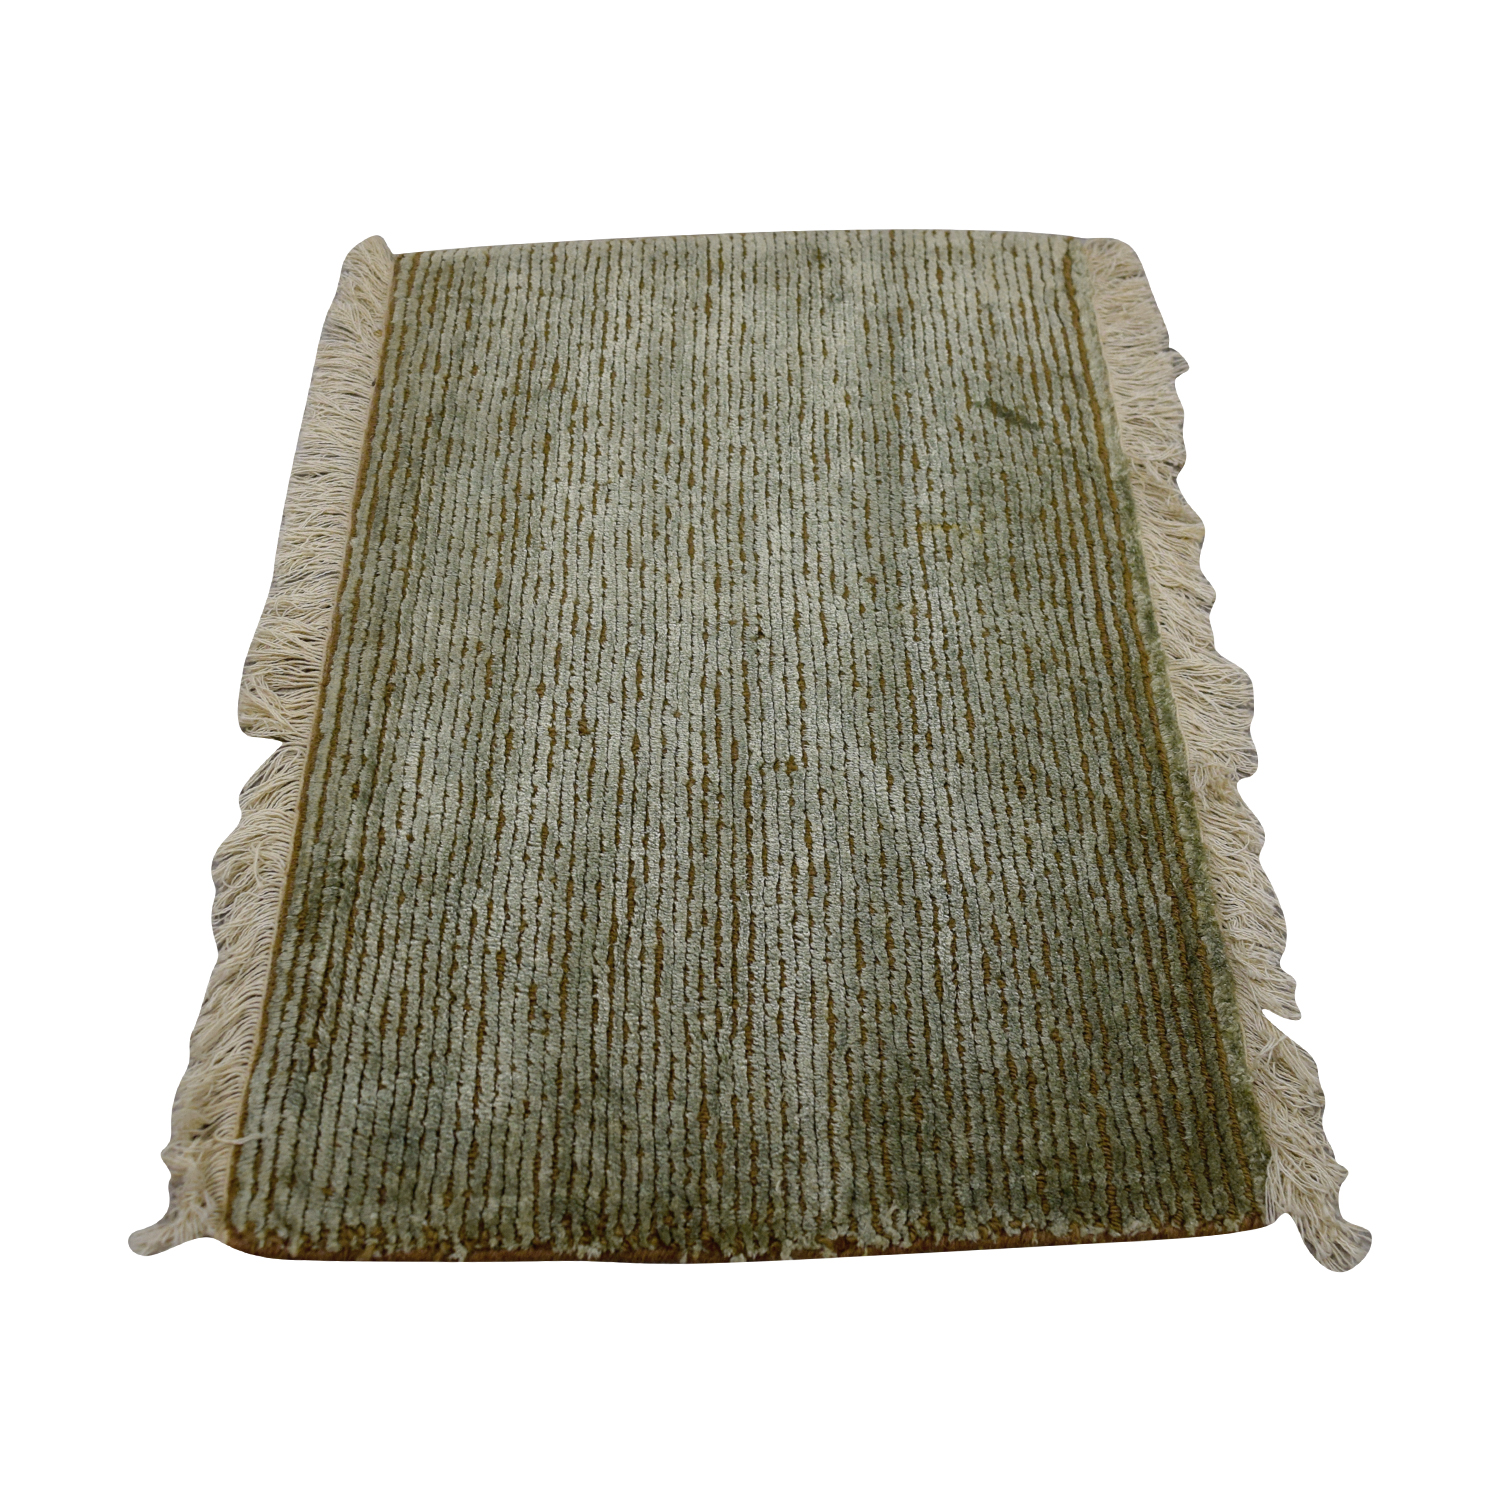 Obeetee Obeetee Green Entry Rug Rugs